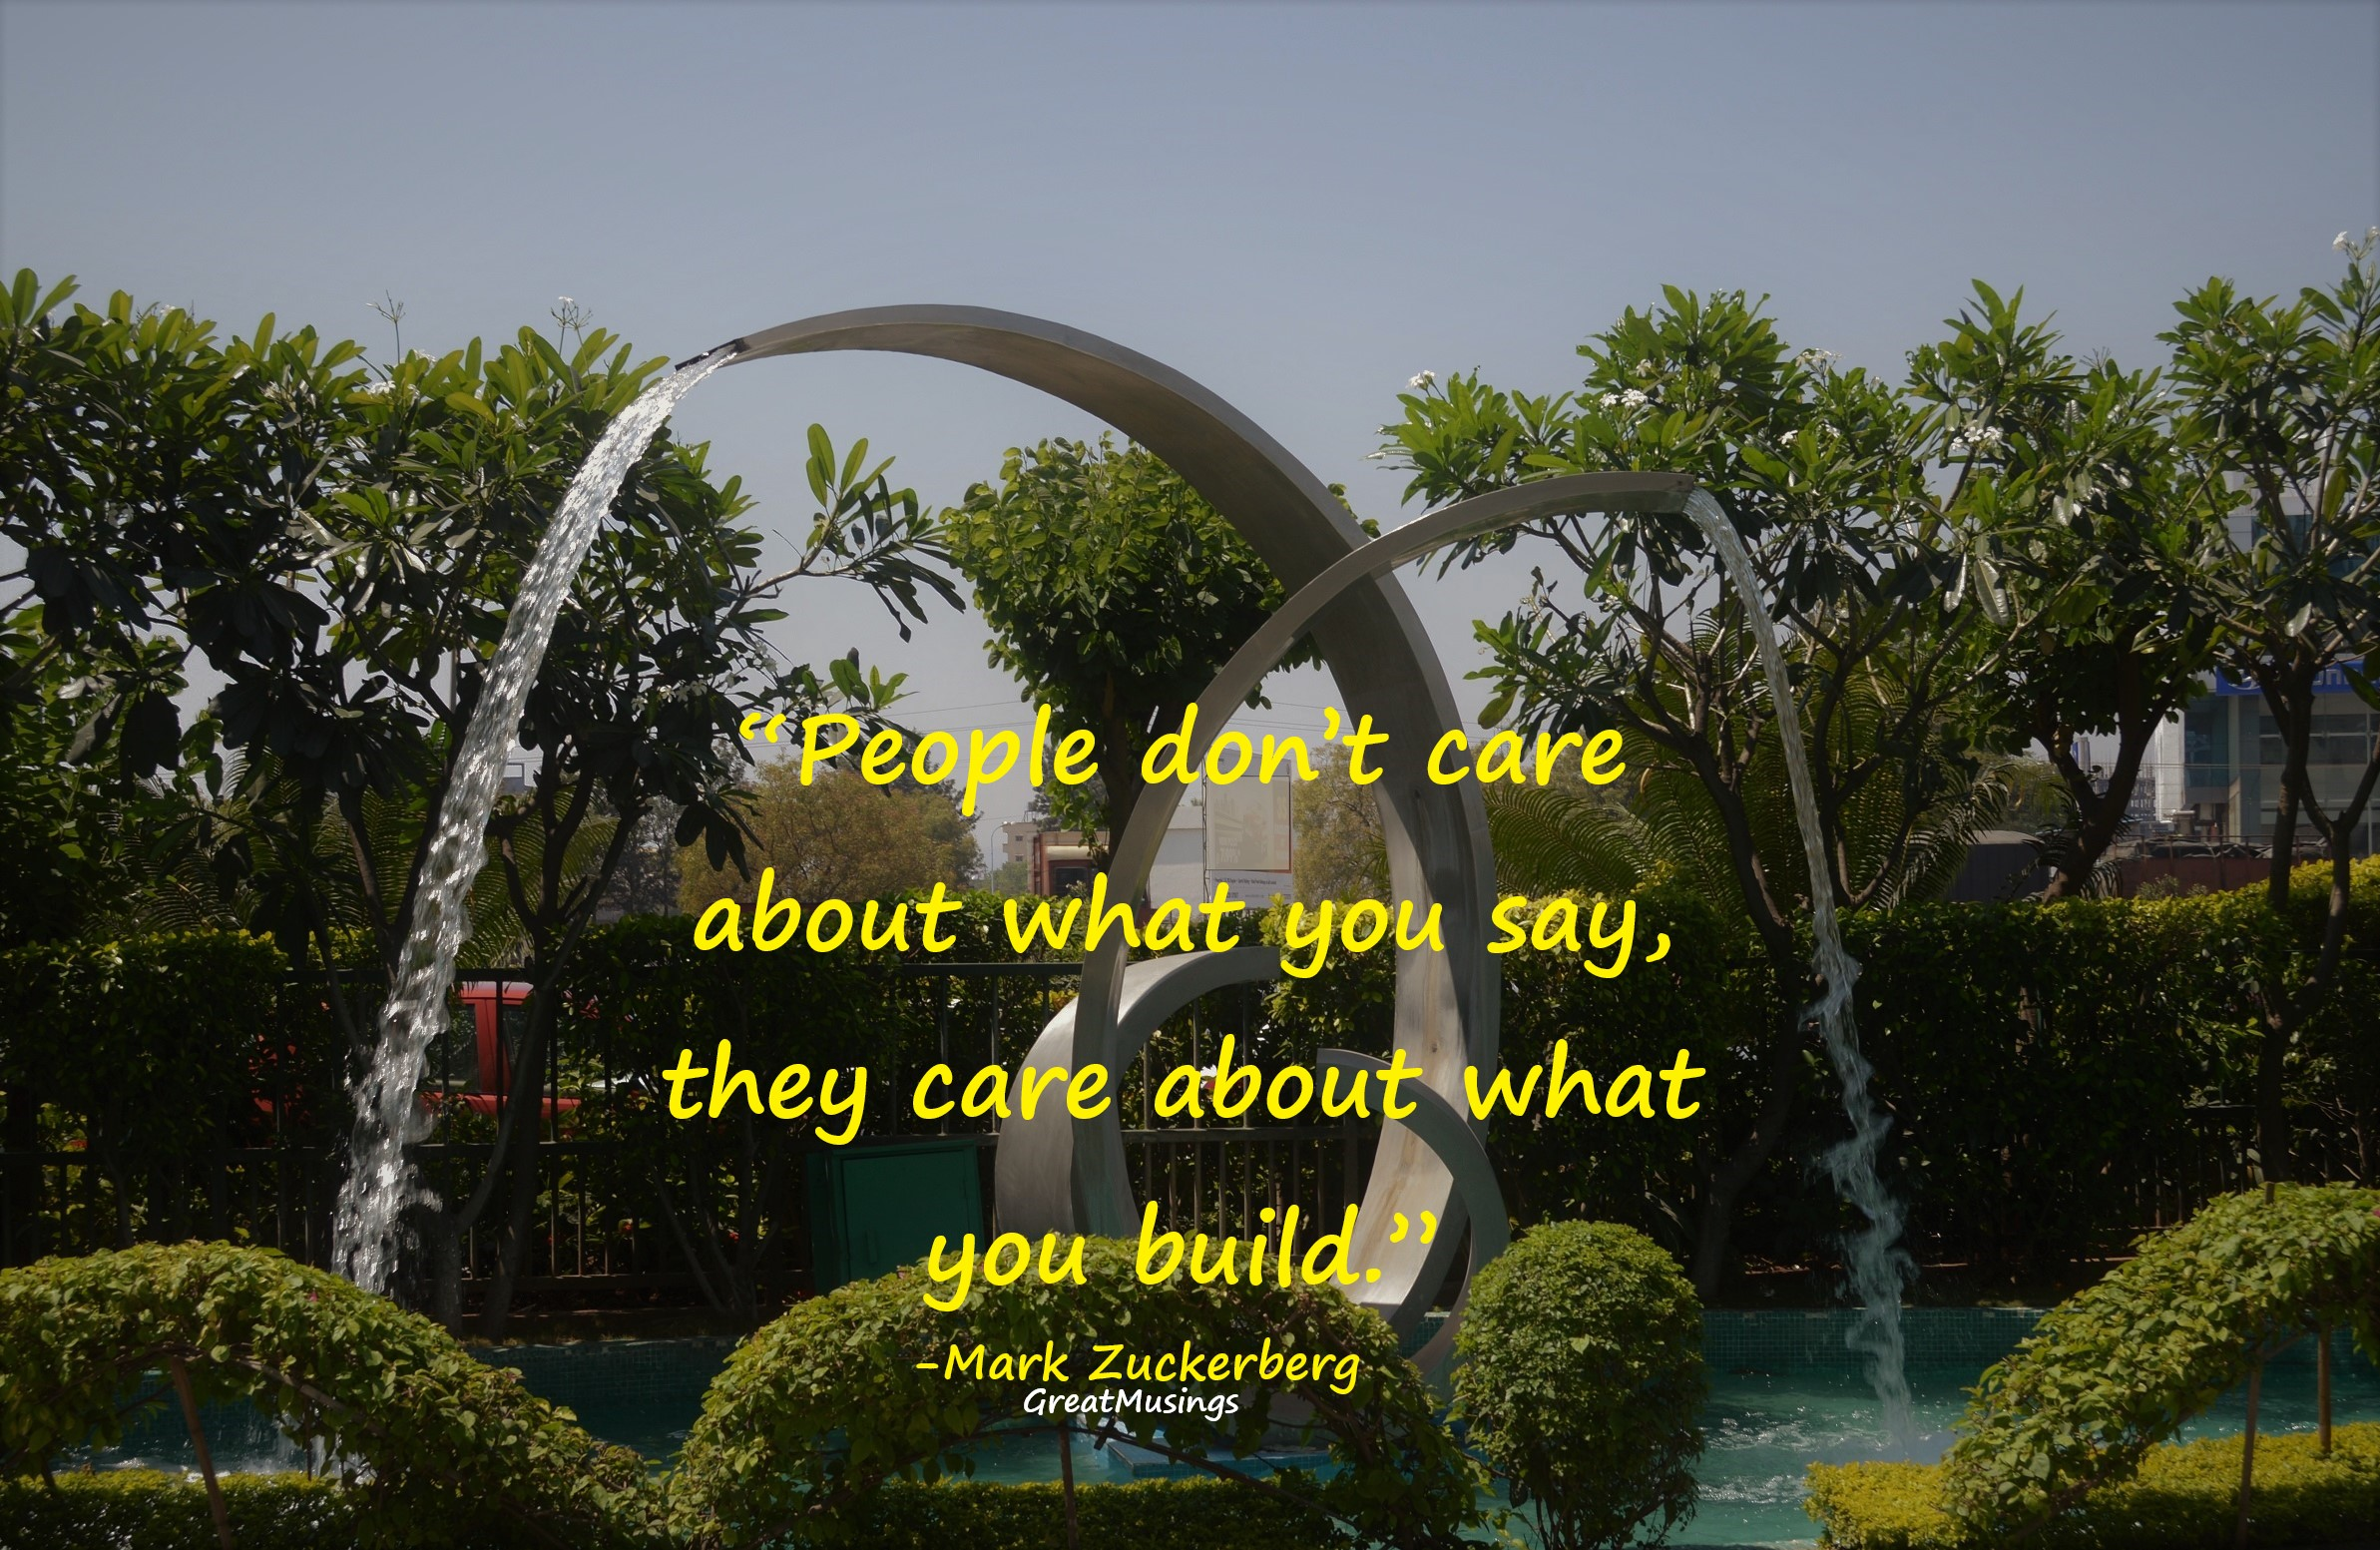 Artificial fountain pic with a quote